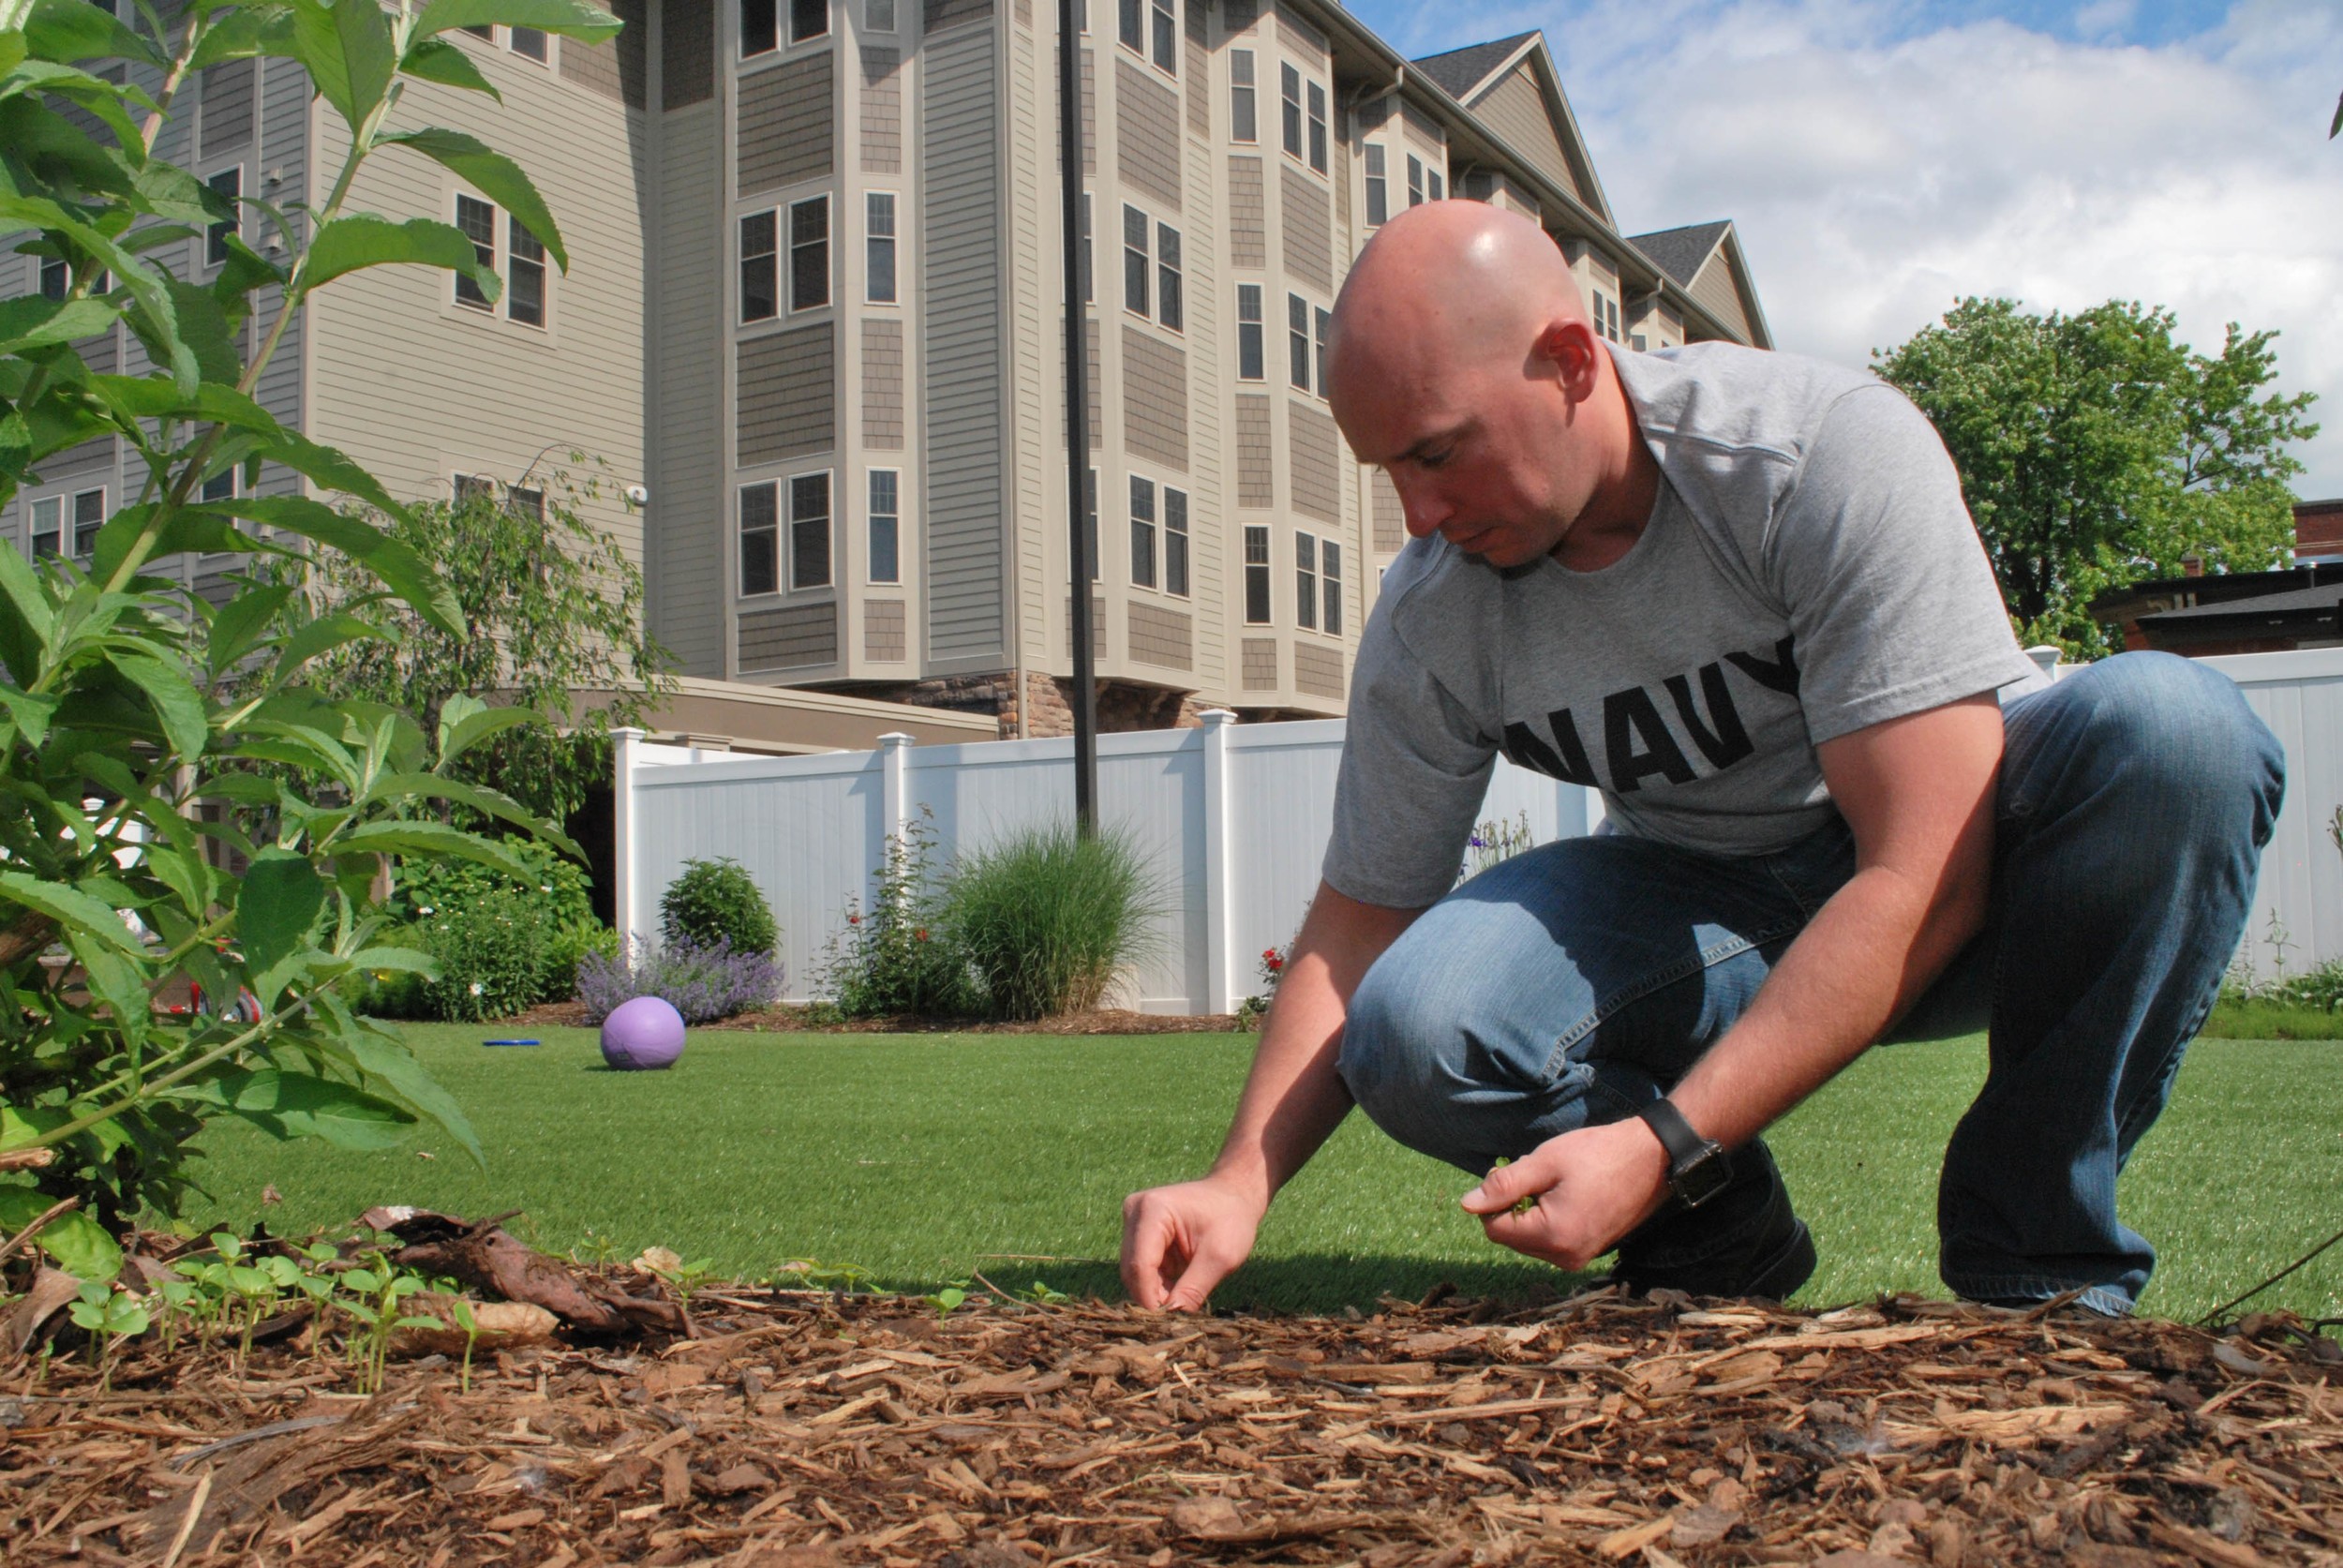 SYRACUSE, N.Y. (June 6, 2016) Machinist Mate (Auxiliary) 1st Class (SS) Joel L. Towry, assigned to the Los Angeles-class attack submarine USS Albany (SSN 753), pulls weeds during a community relations event at Ronald McDonald House Central New York. This is one of several community relations events planned as part of Navy Week Syracuse. (U.S. Navy photo by Mass Communication Specialist 2nd Class Adam D. Wainwright/Released)